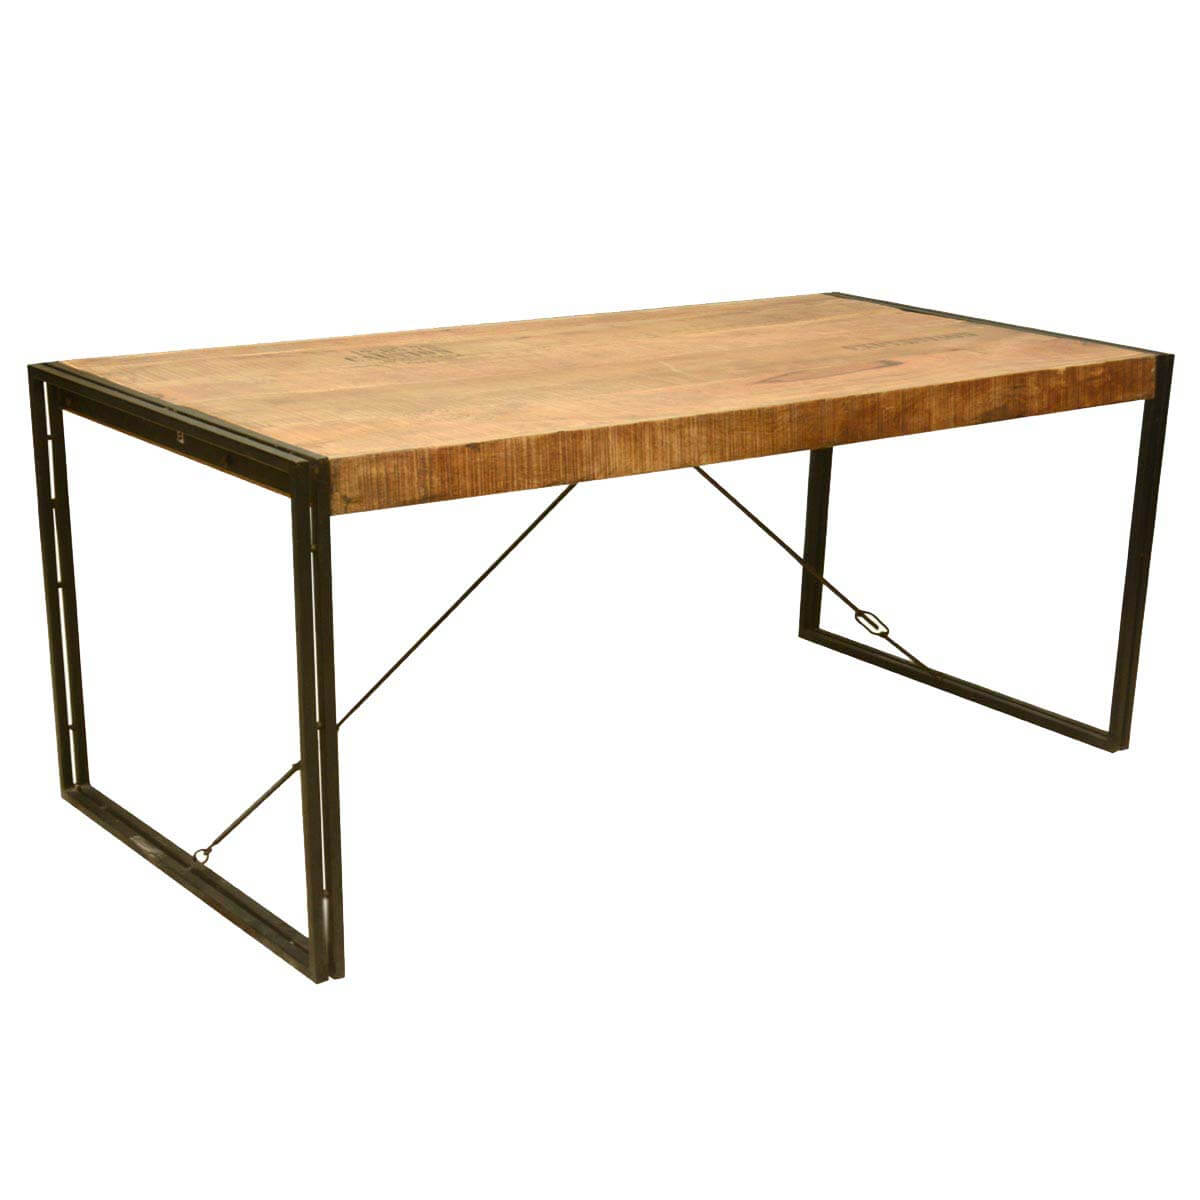 Large rustic industrial style mango wood and iron dining table for Biggest dining table